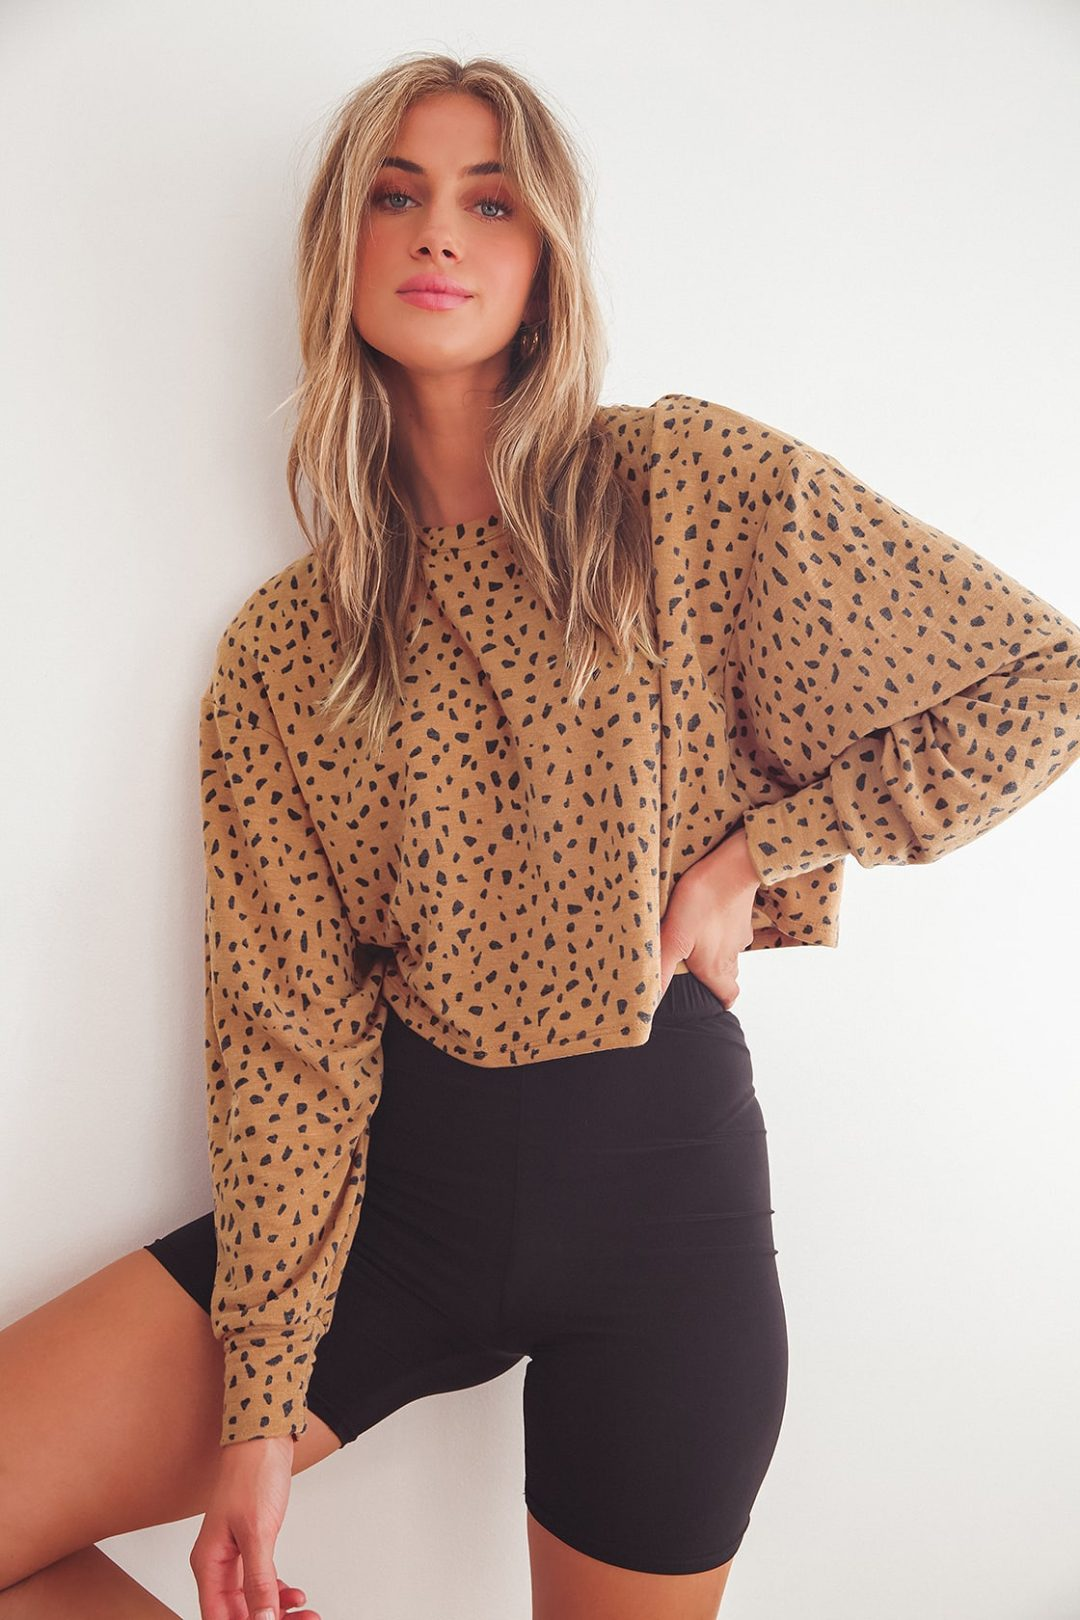 Leopard print sweatshirt outfit with bike shorts